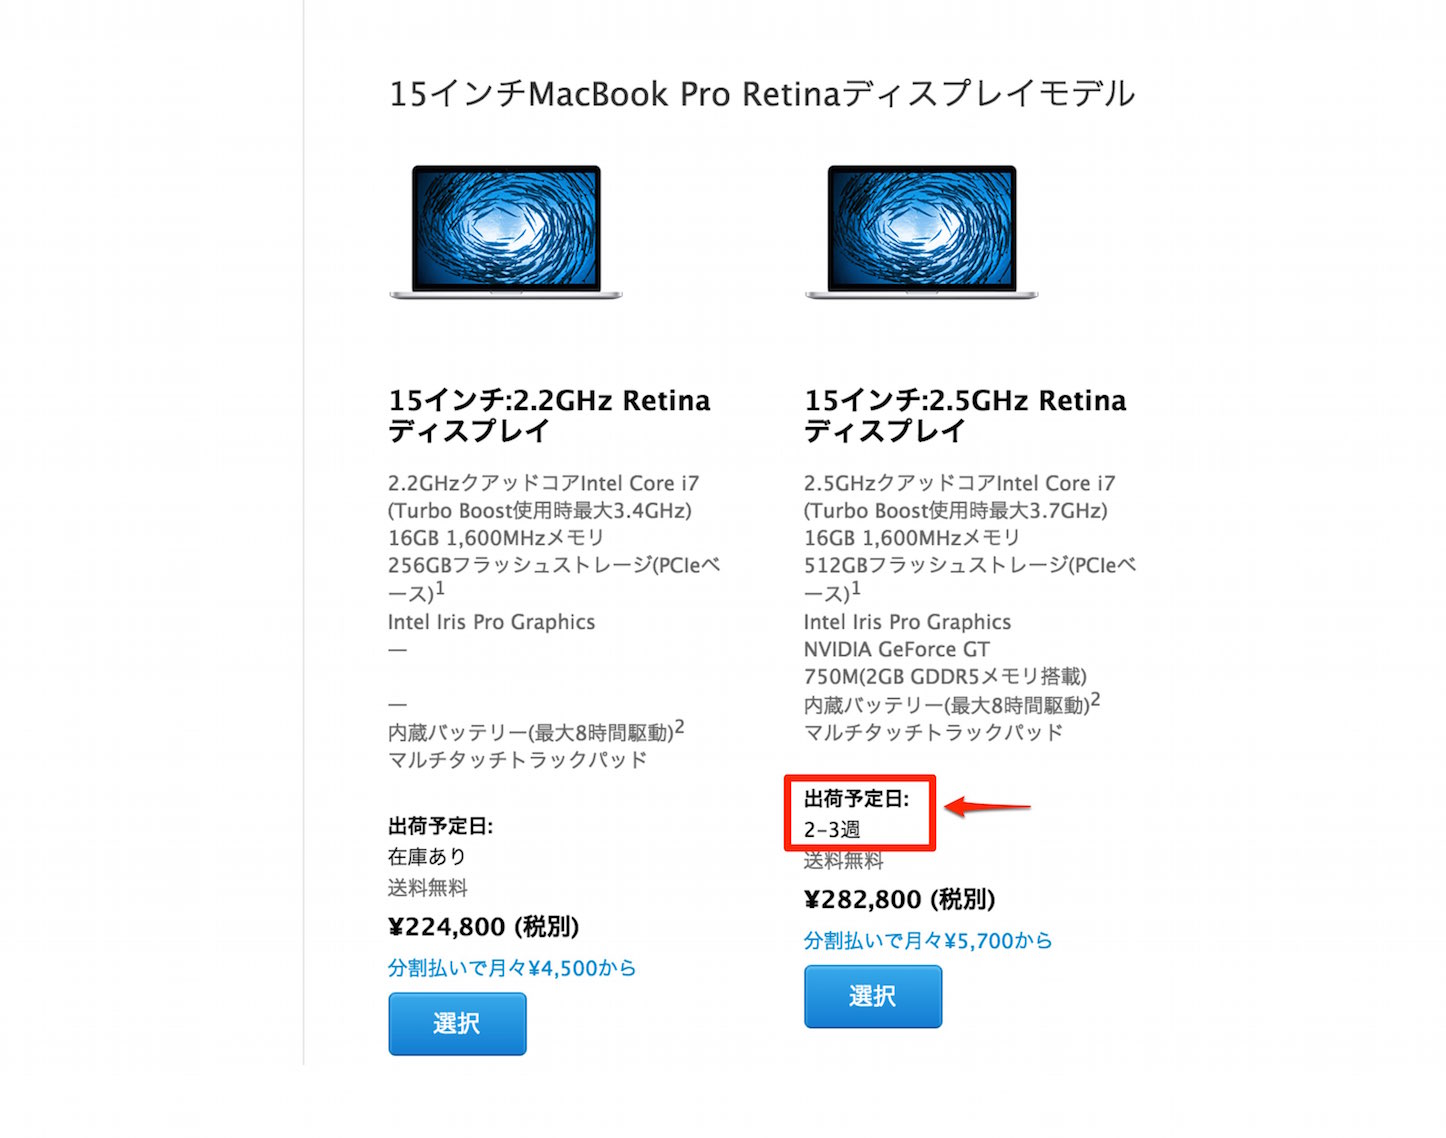 Macbook pro retina ship date